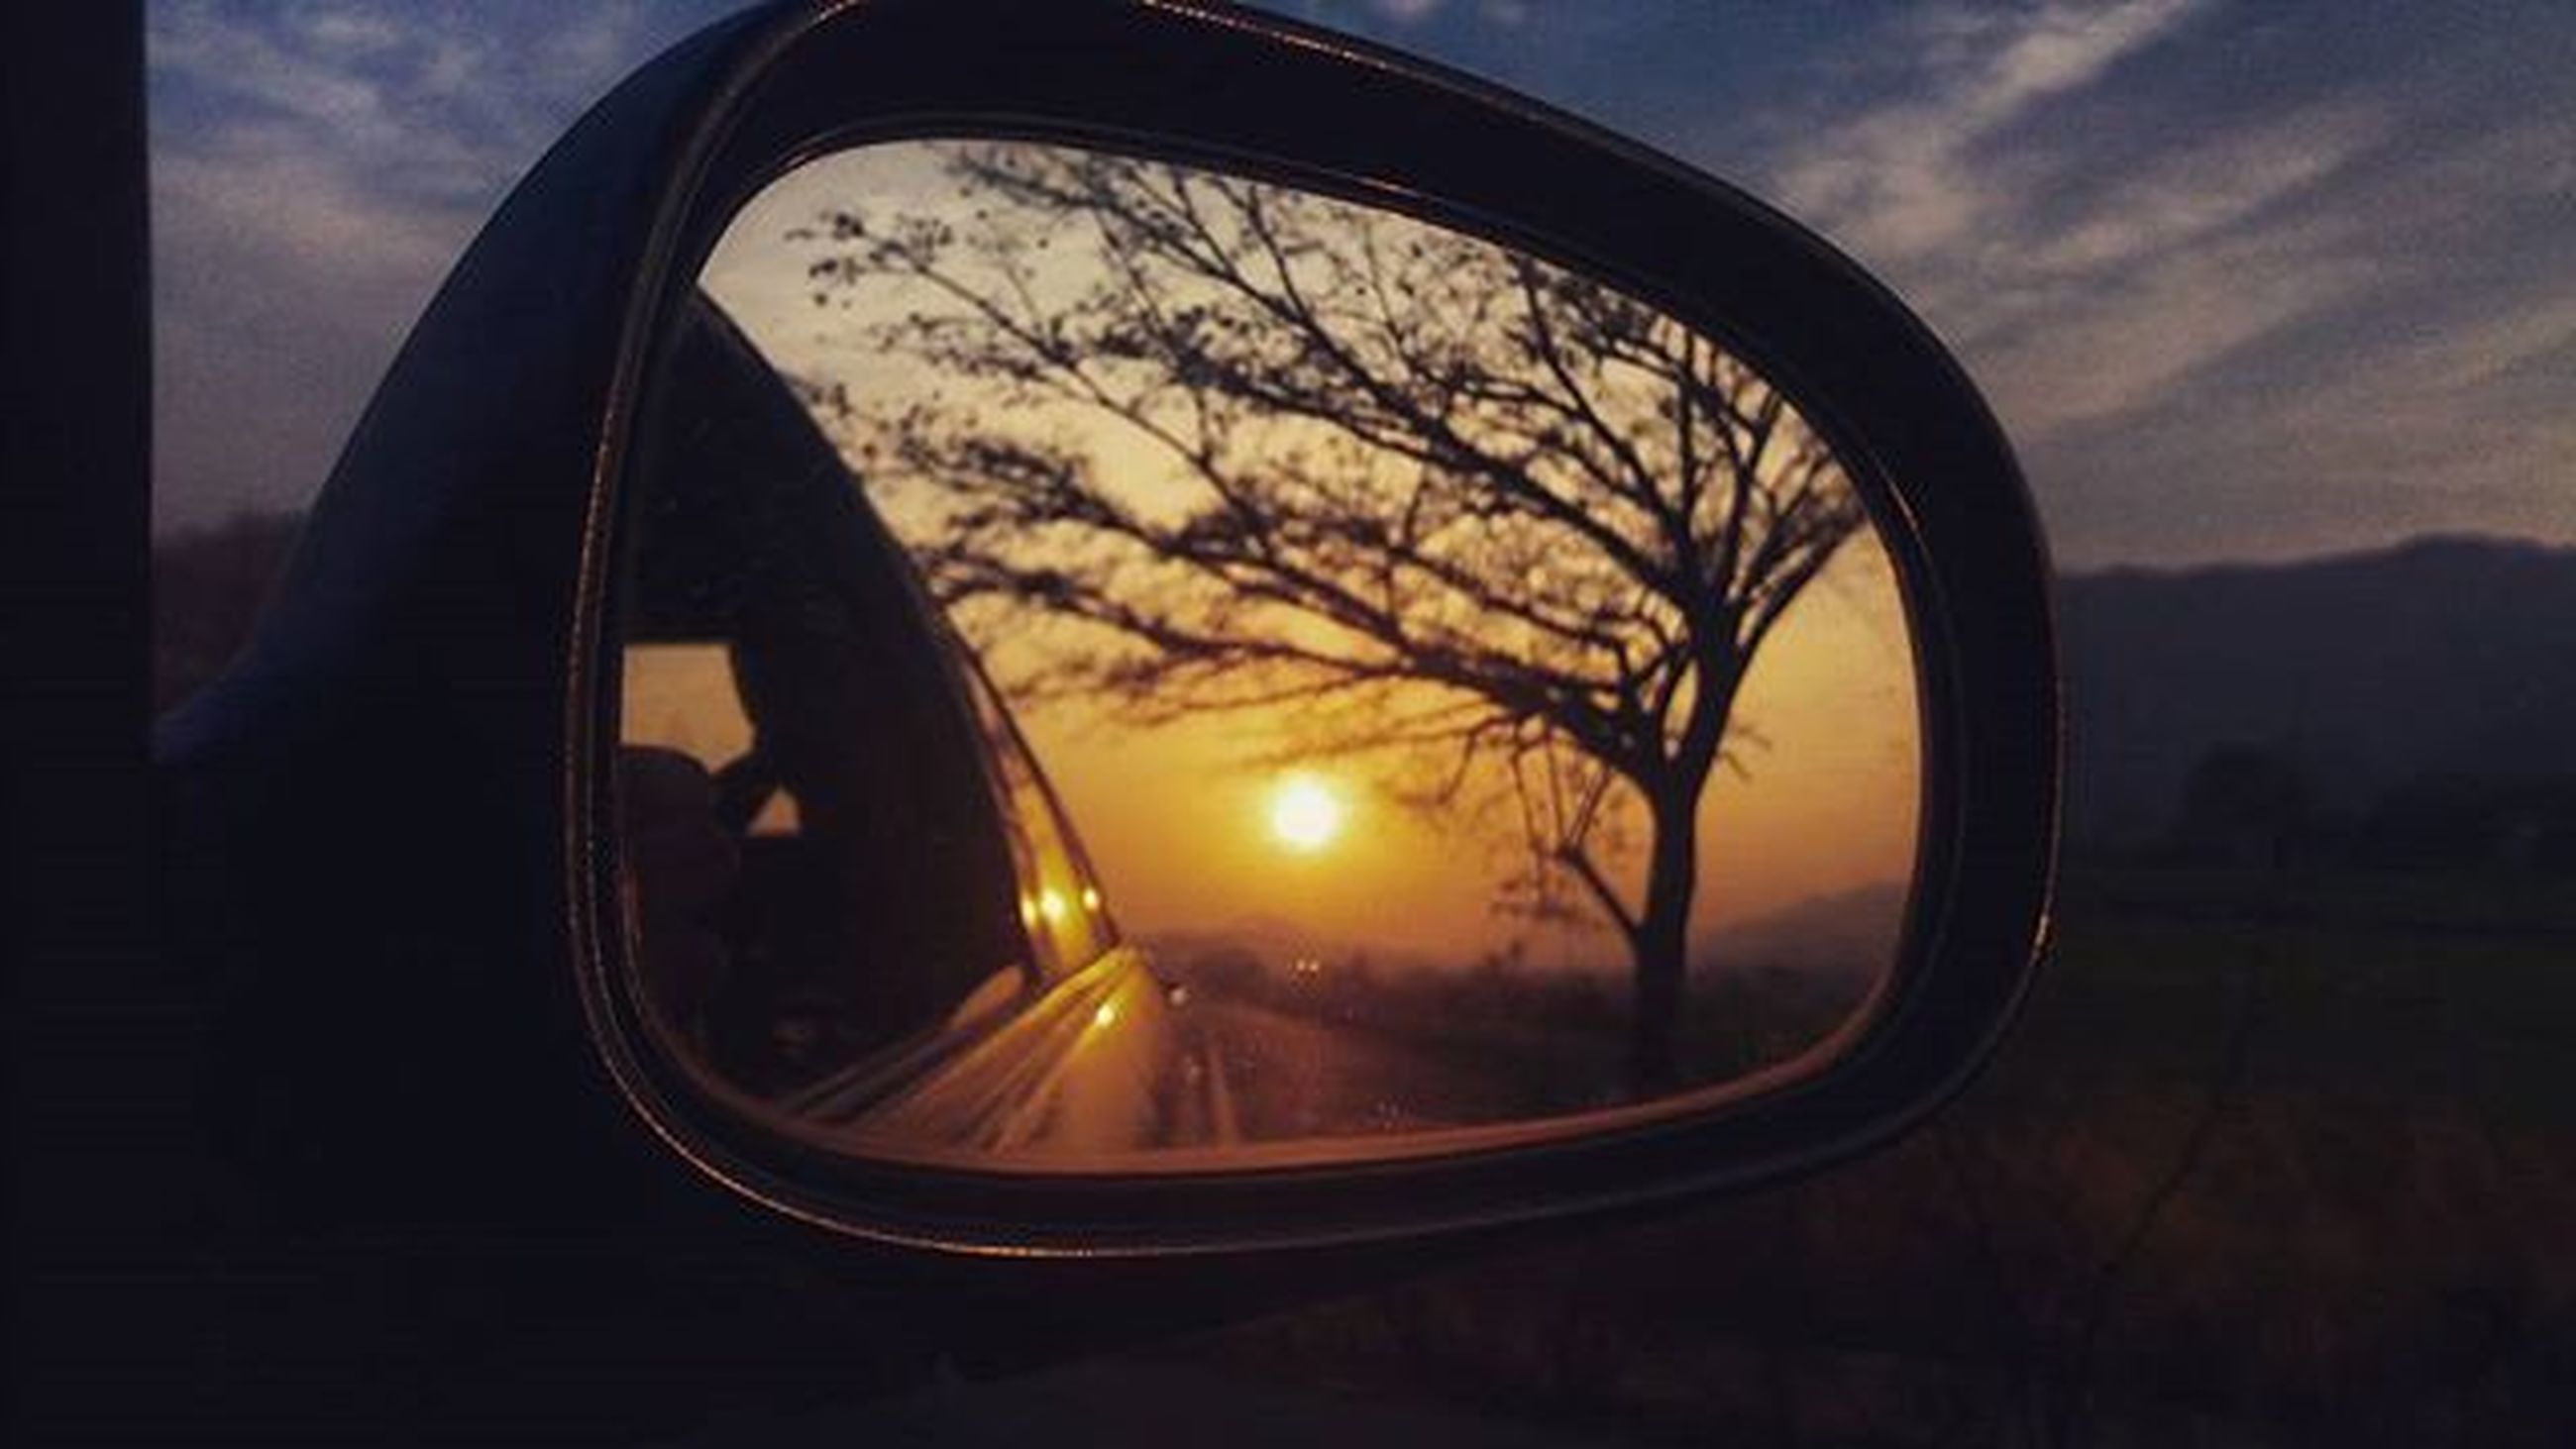 transportation, mode of transport, land vehicle, sunset, side-view mirror, sky, car, reflection, silhouette, cloud - sky, part of, travel, close-up, glass - material, vehicle interior, transparent, street, orange color, stationary, cloud